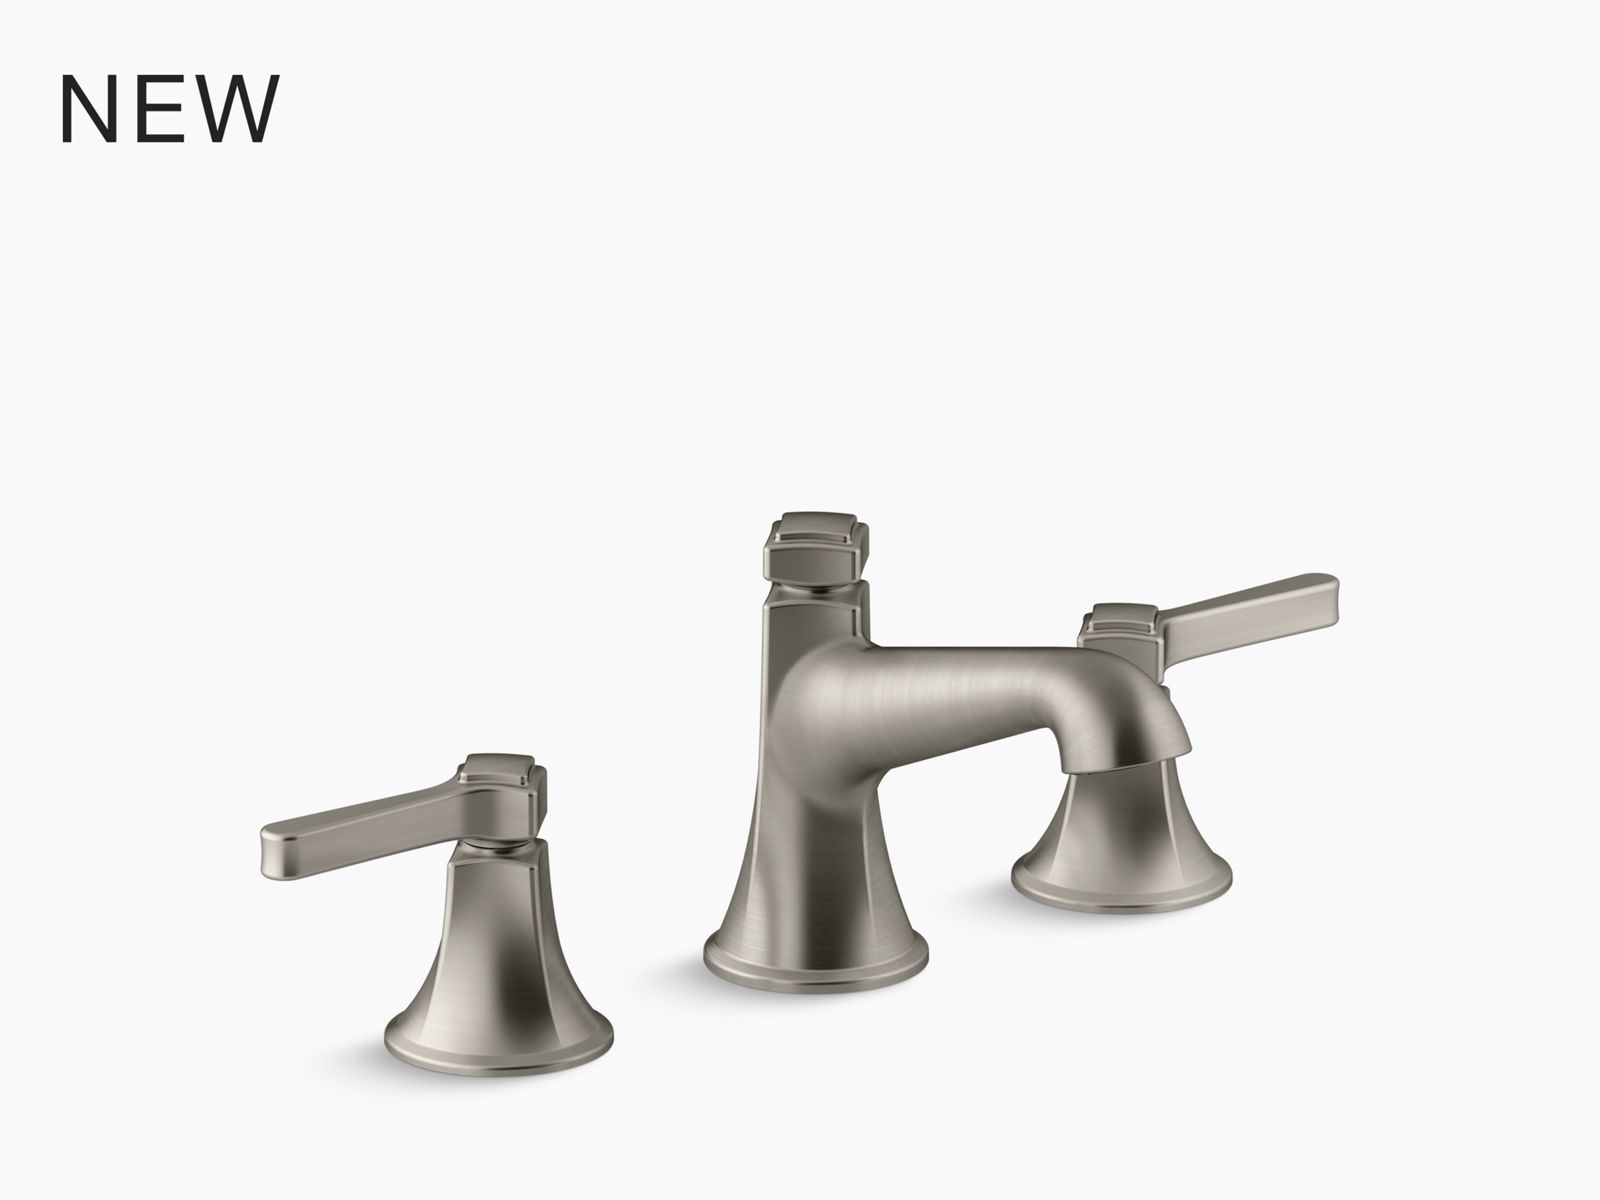 sensate touchless kitchen faucet with 15 1 2 pull down spout docknetik magnetic docking system and a 2 function sprayhead featuring the new sweep